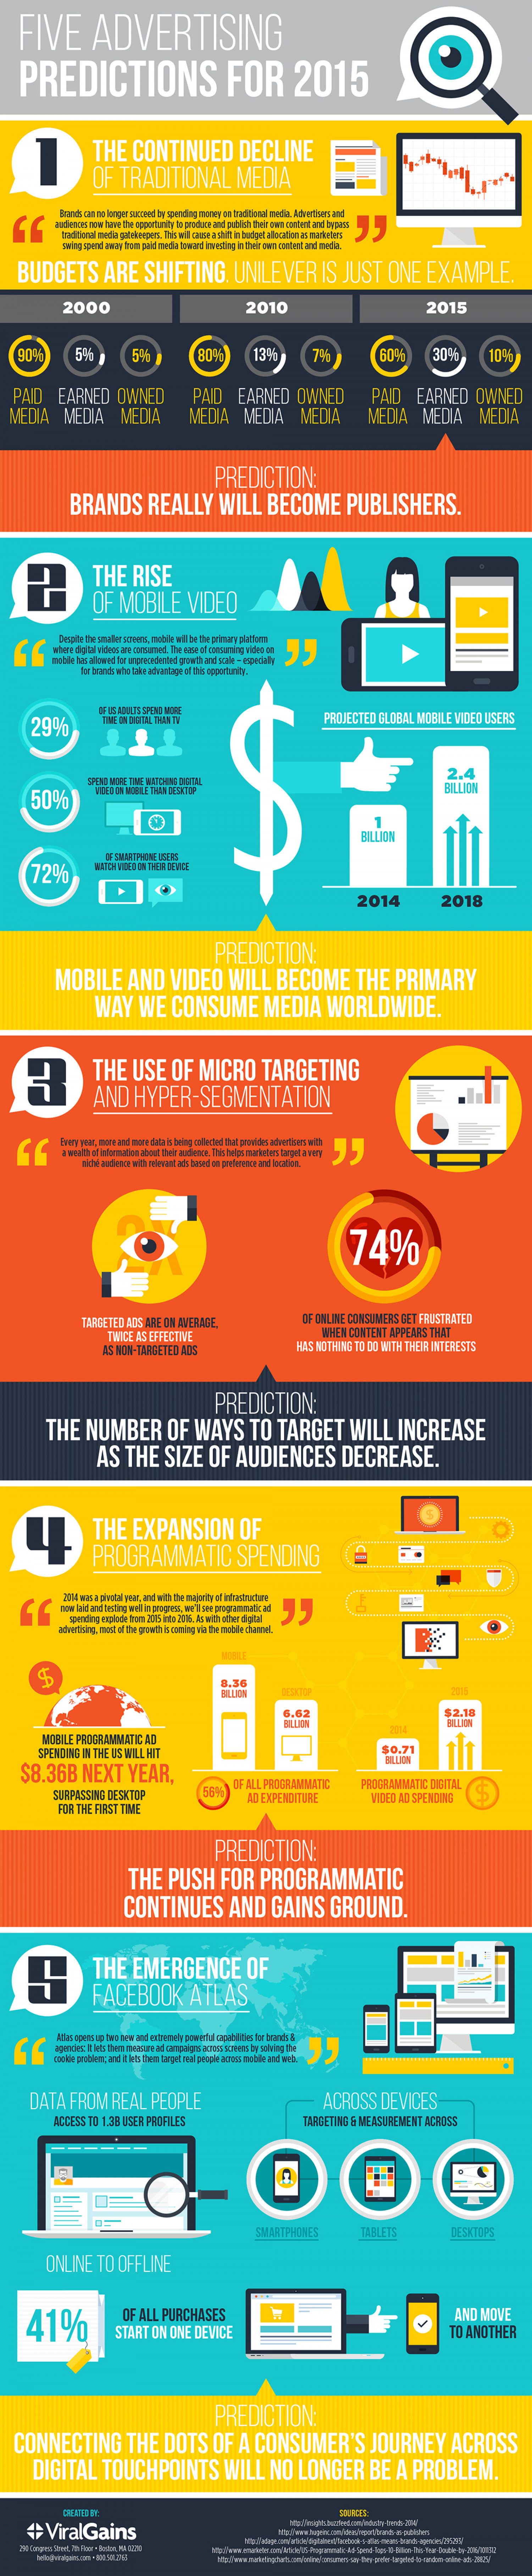 5 Advertising Predictions for 2015 Infographic